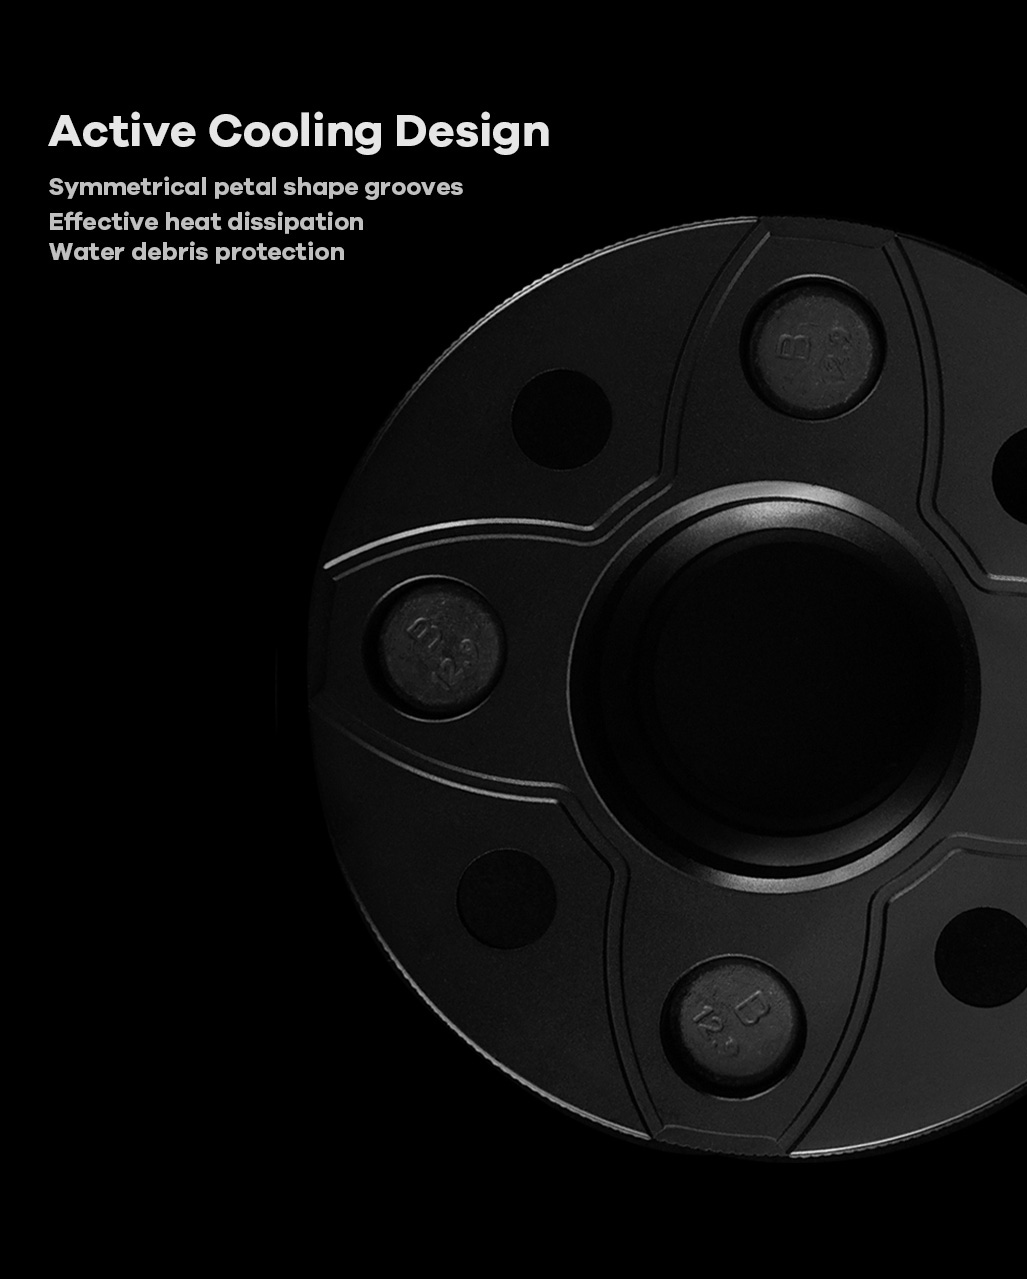 BONOSS-forged-active-cooling-hubcentric 4x108 wheel-spacer-by-lulu-3